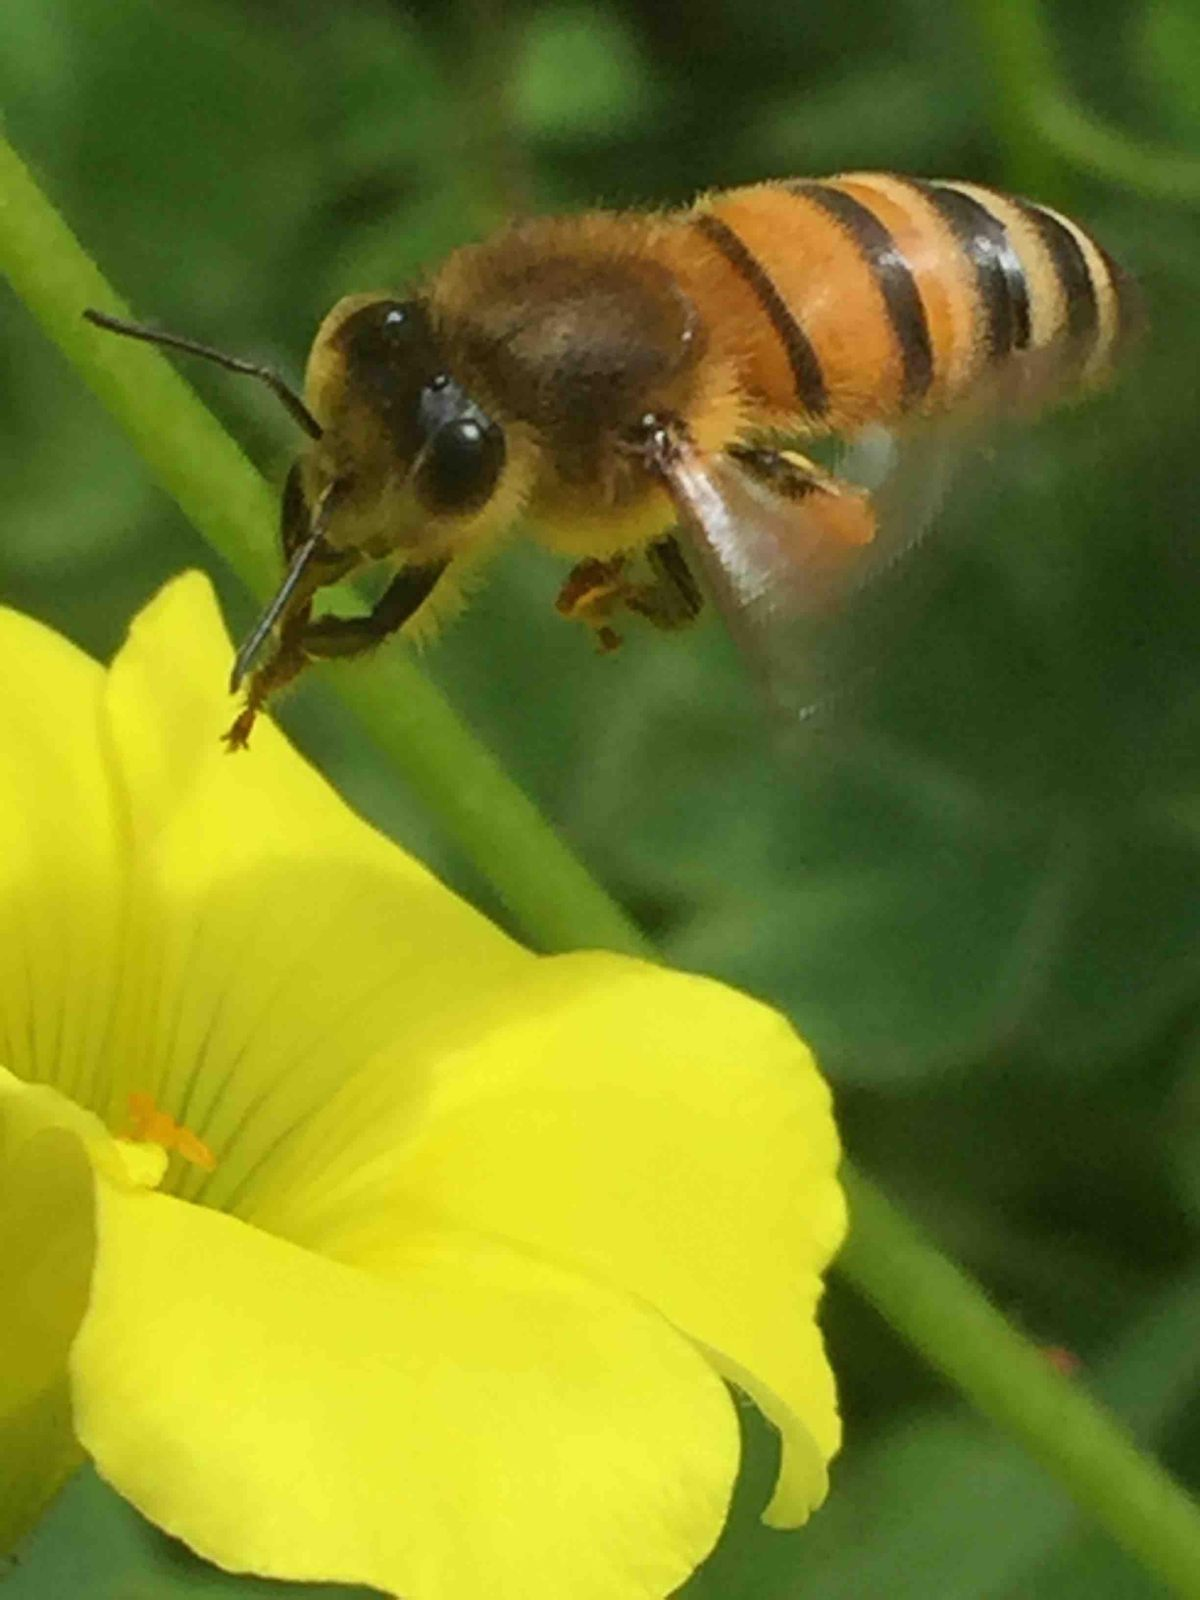 Bees - worker bee